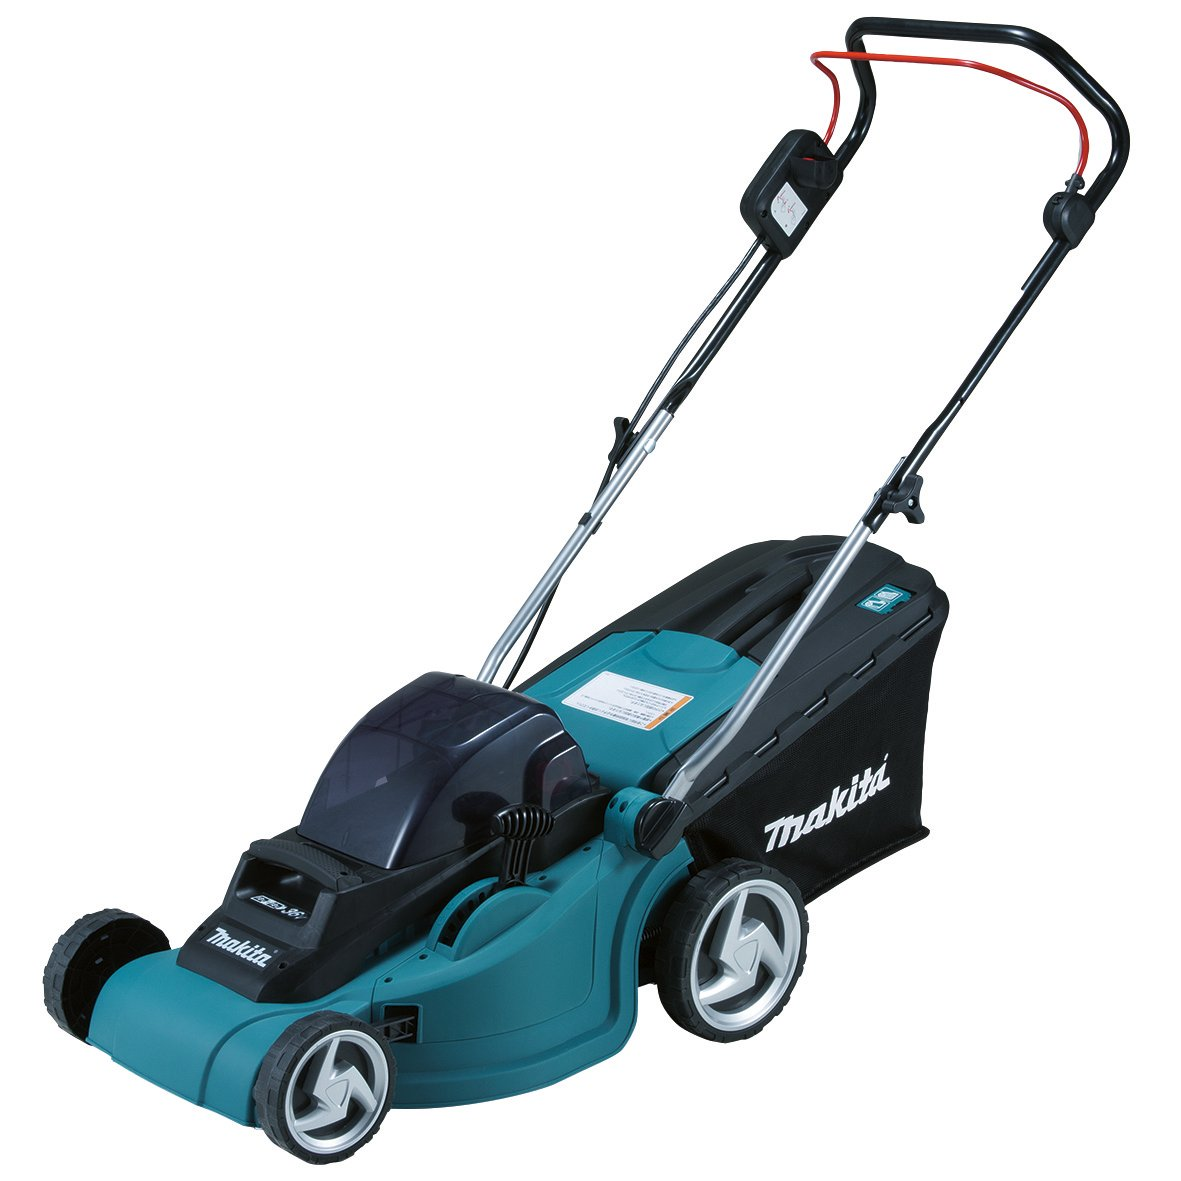 Makita DLM380Z Manual 36V Lawn Mower